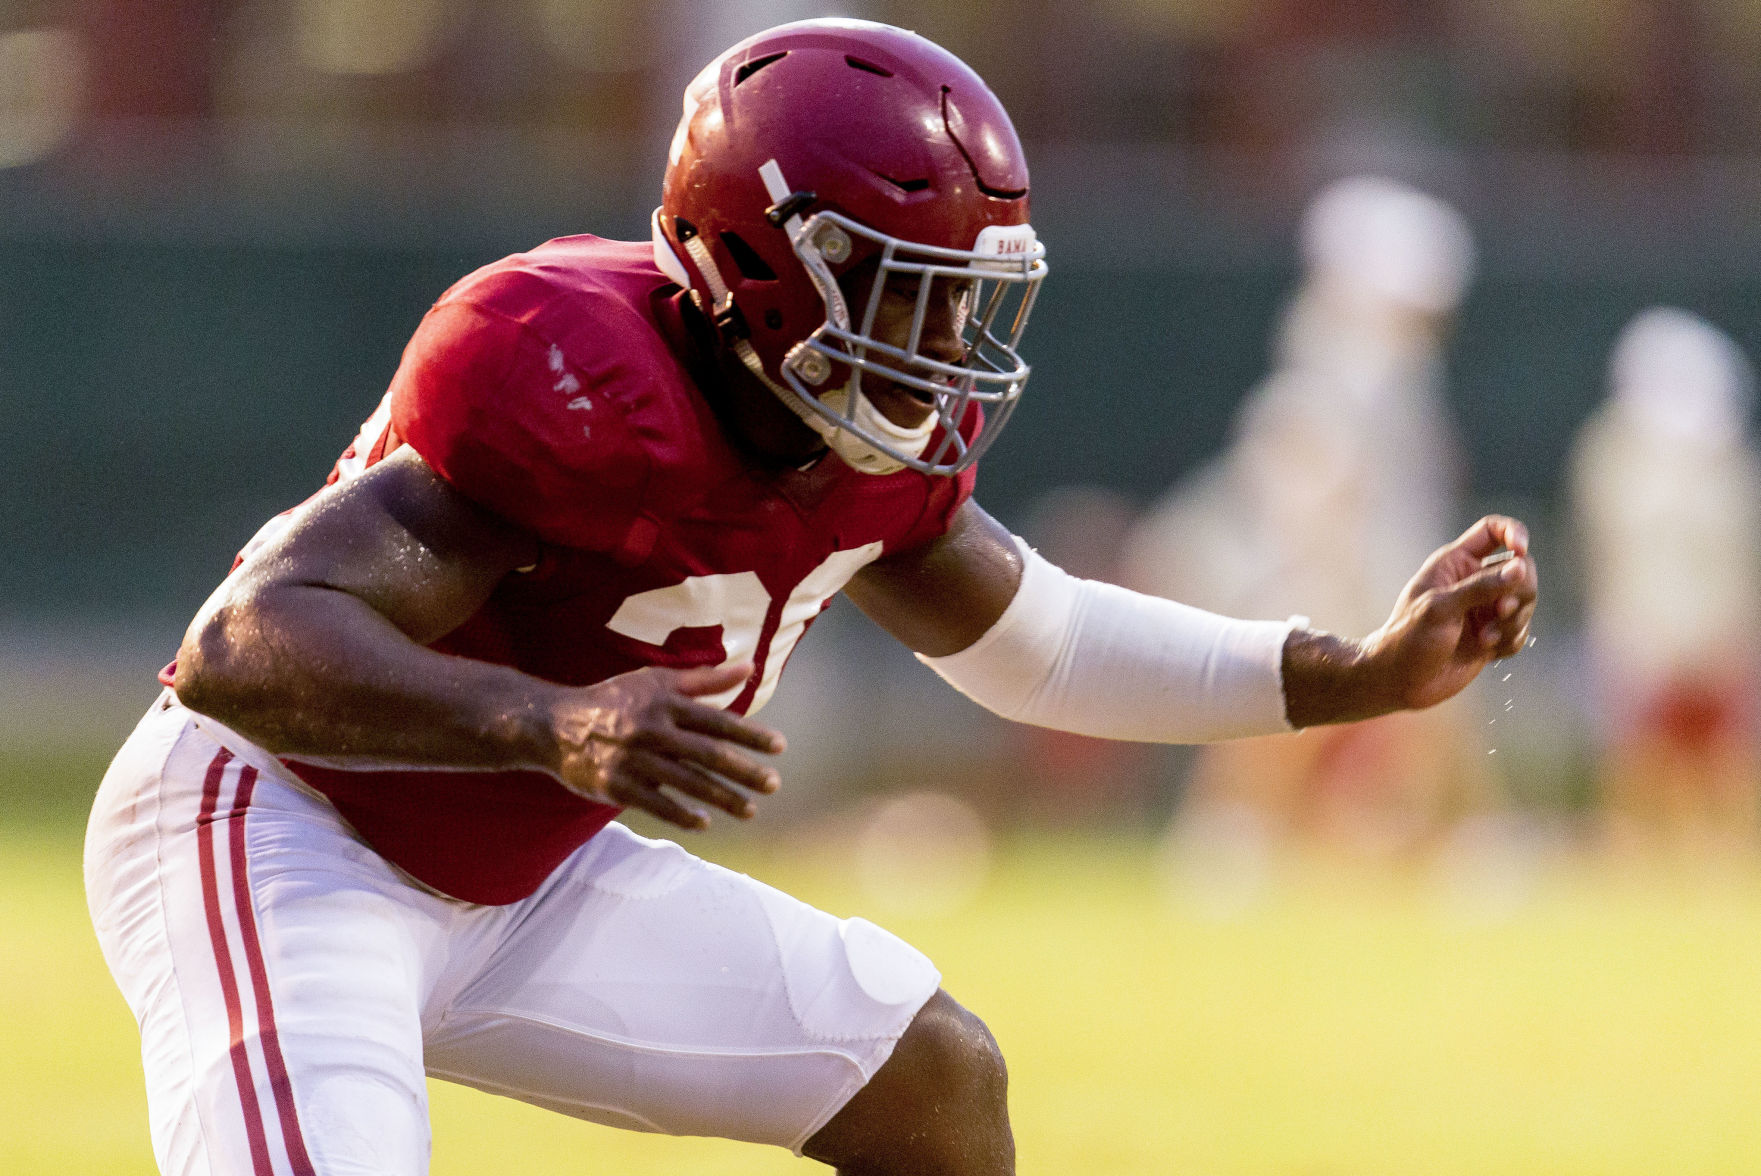 Alabama Crimson Tide breeze past Colorado State Rams